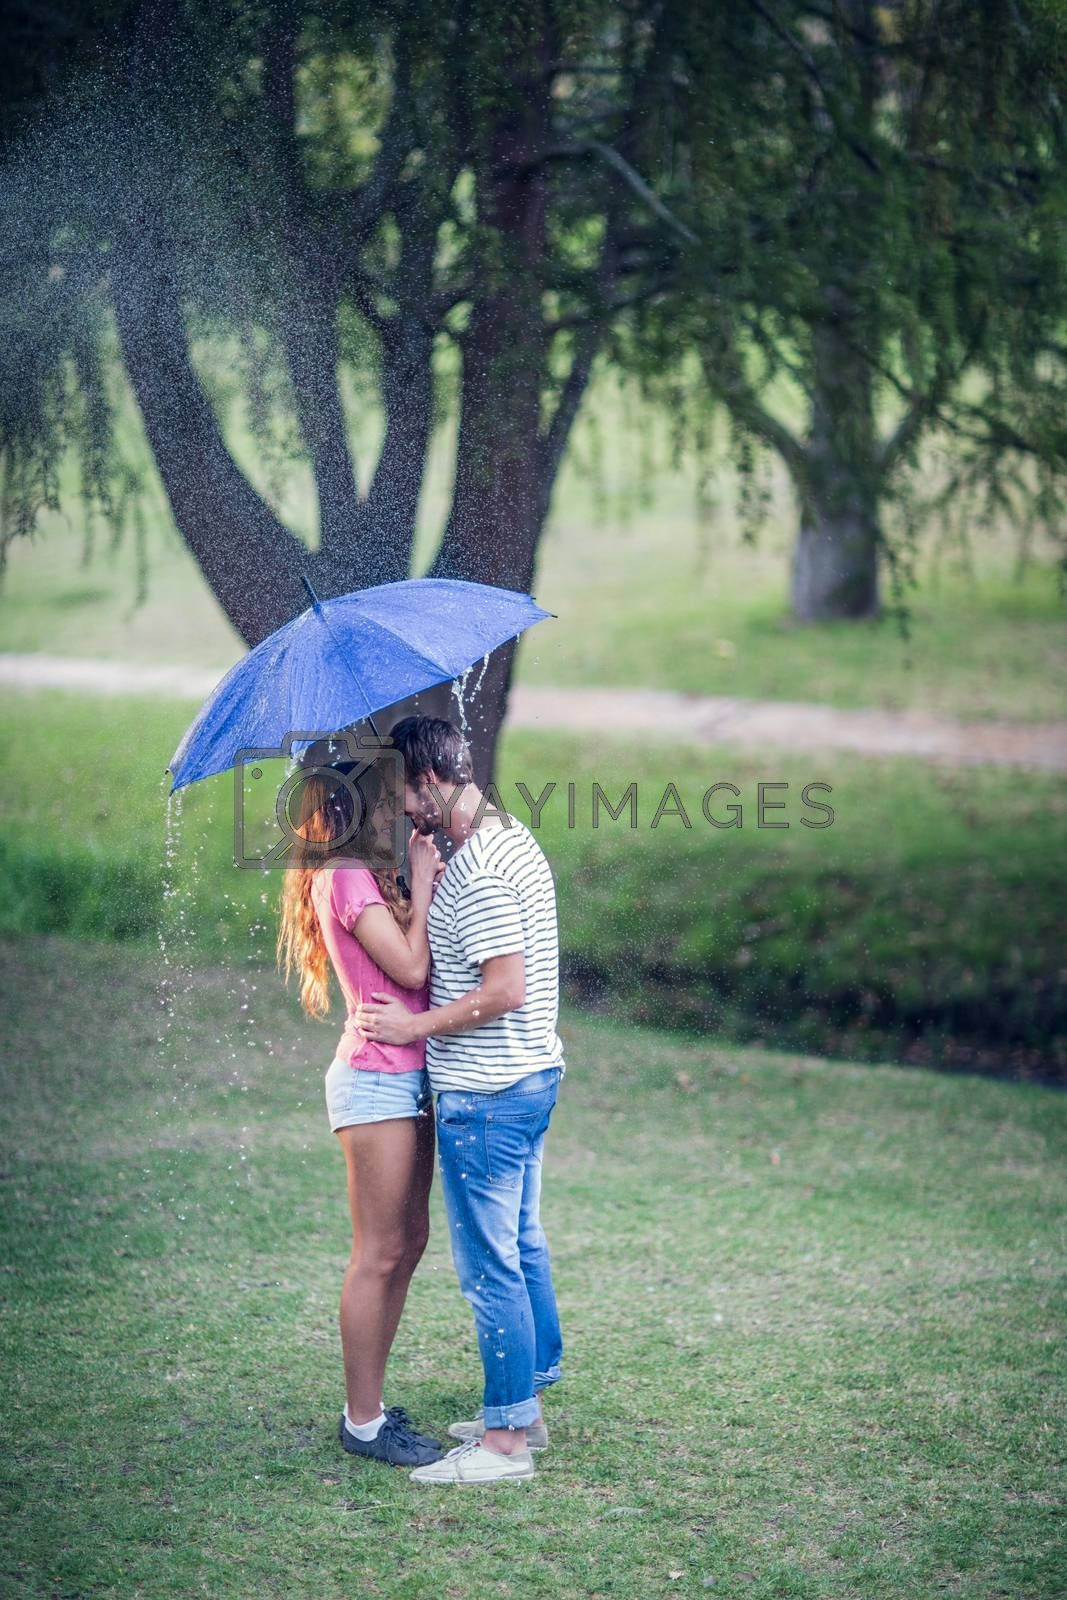 young people in the park on the raining day